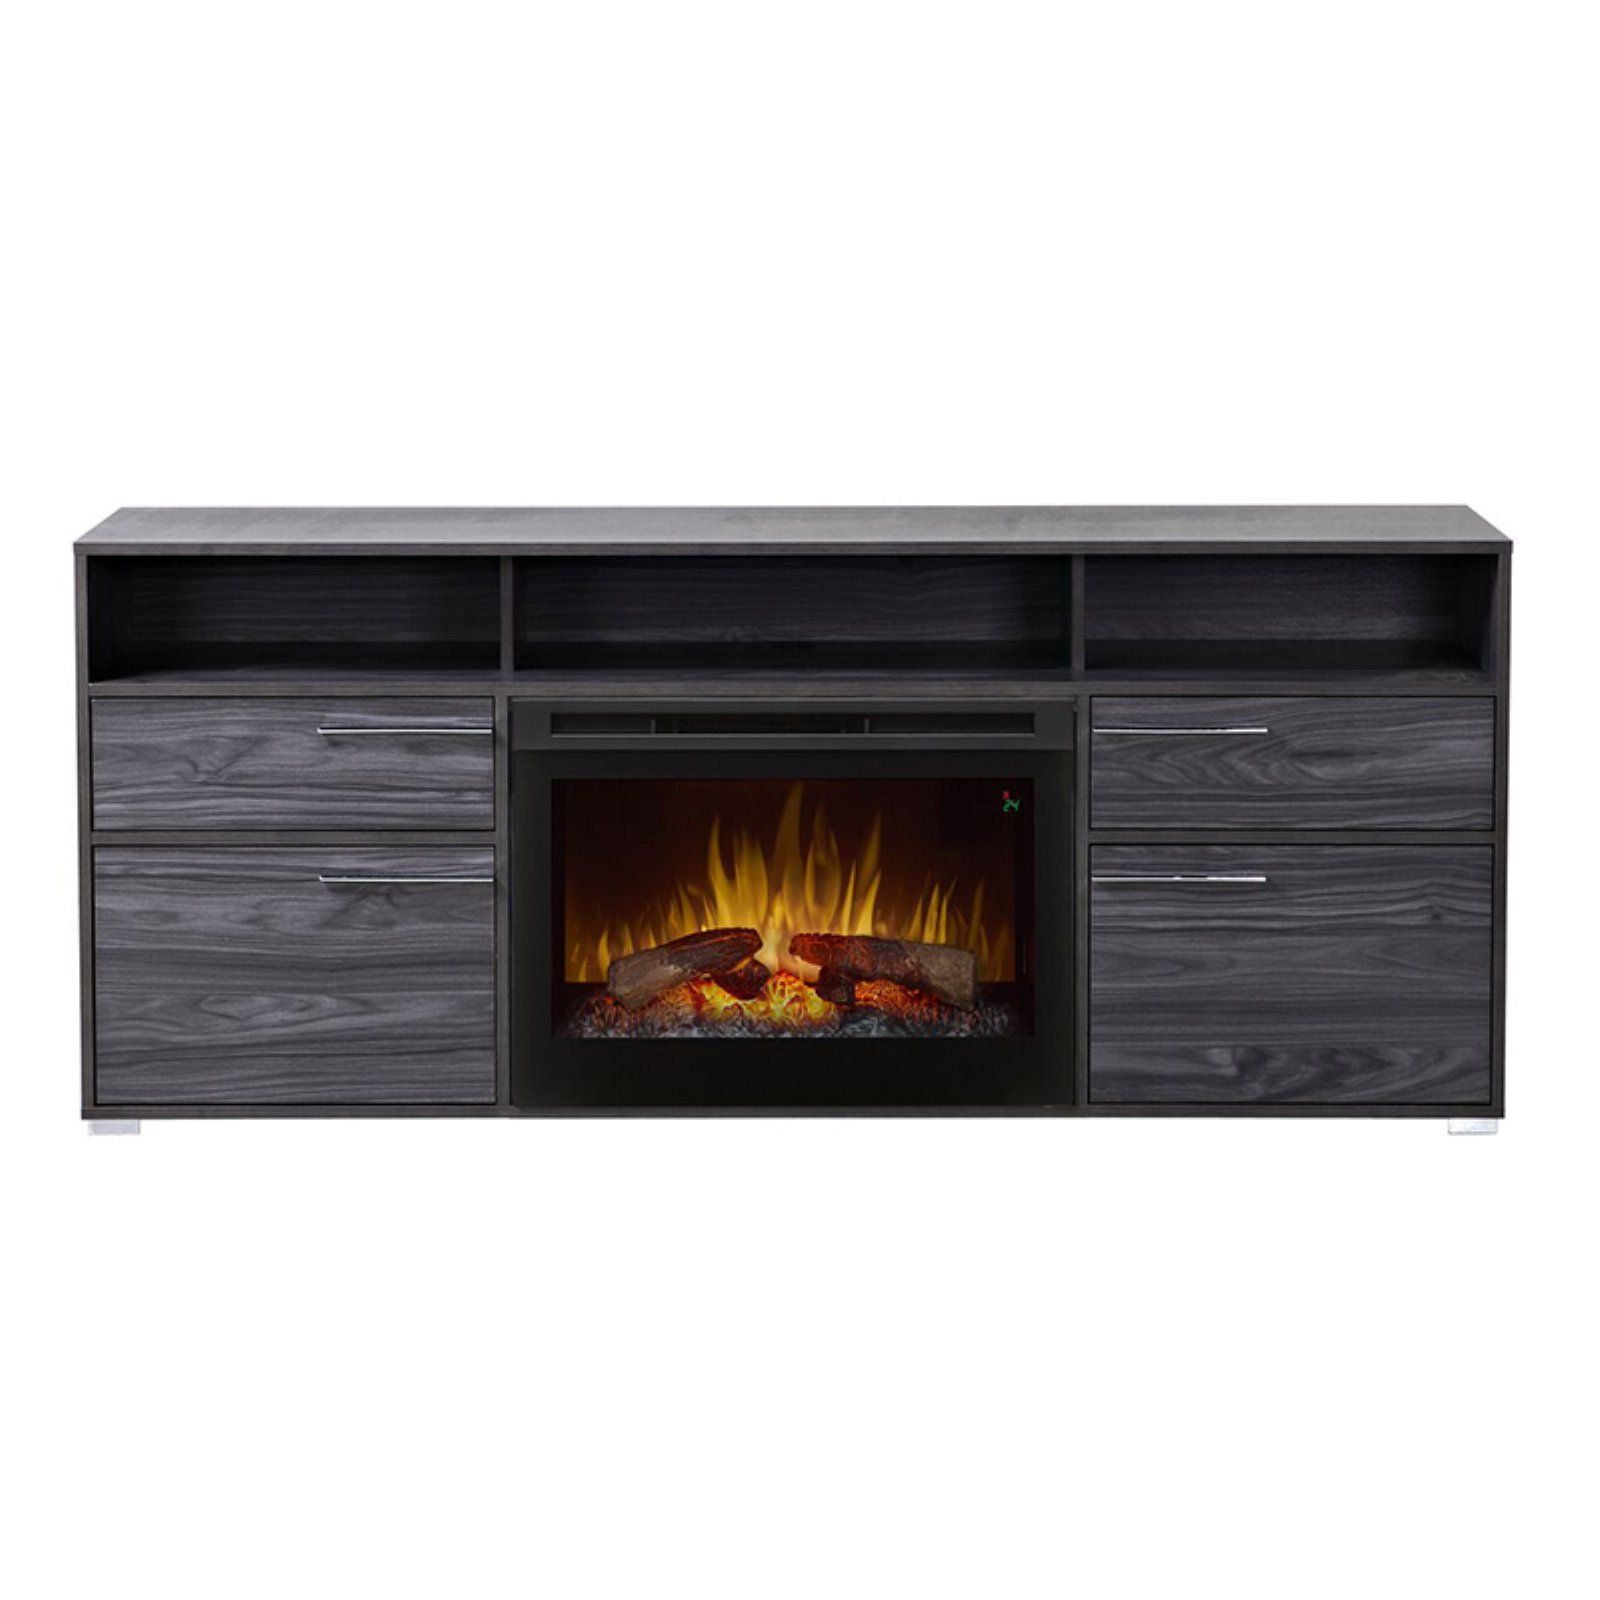 b3562b1aaf2 Dimplex Sander Electric Fireplace TV Stand in 2019